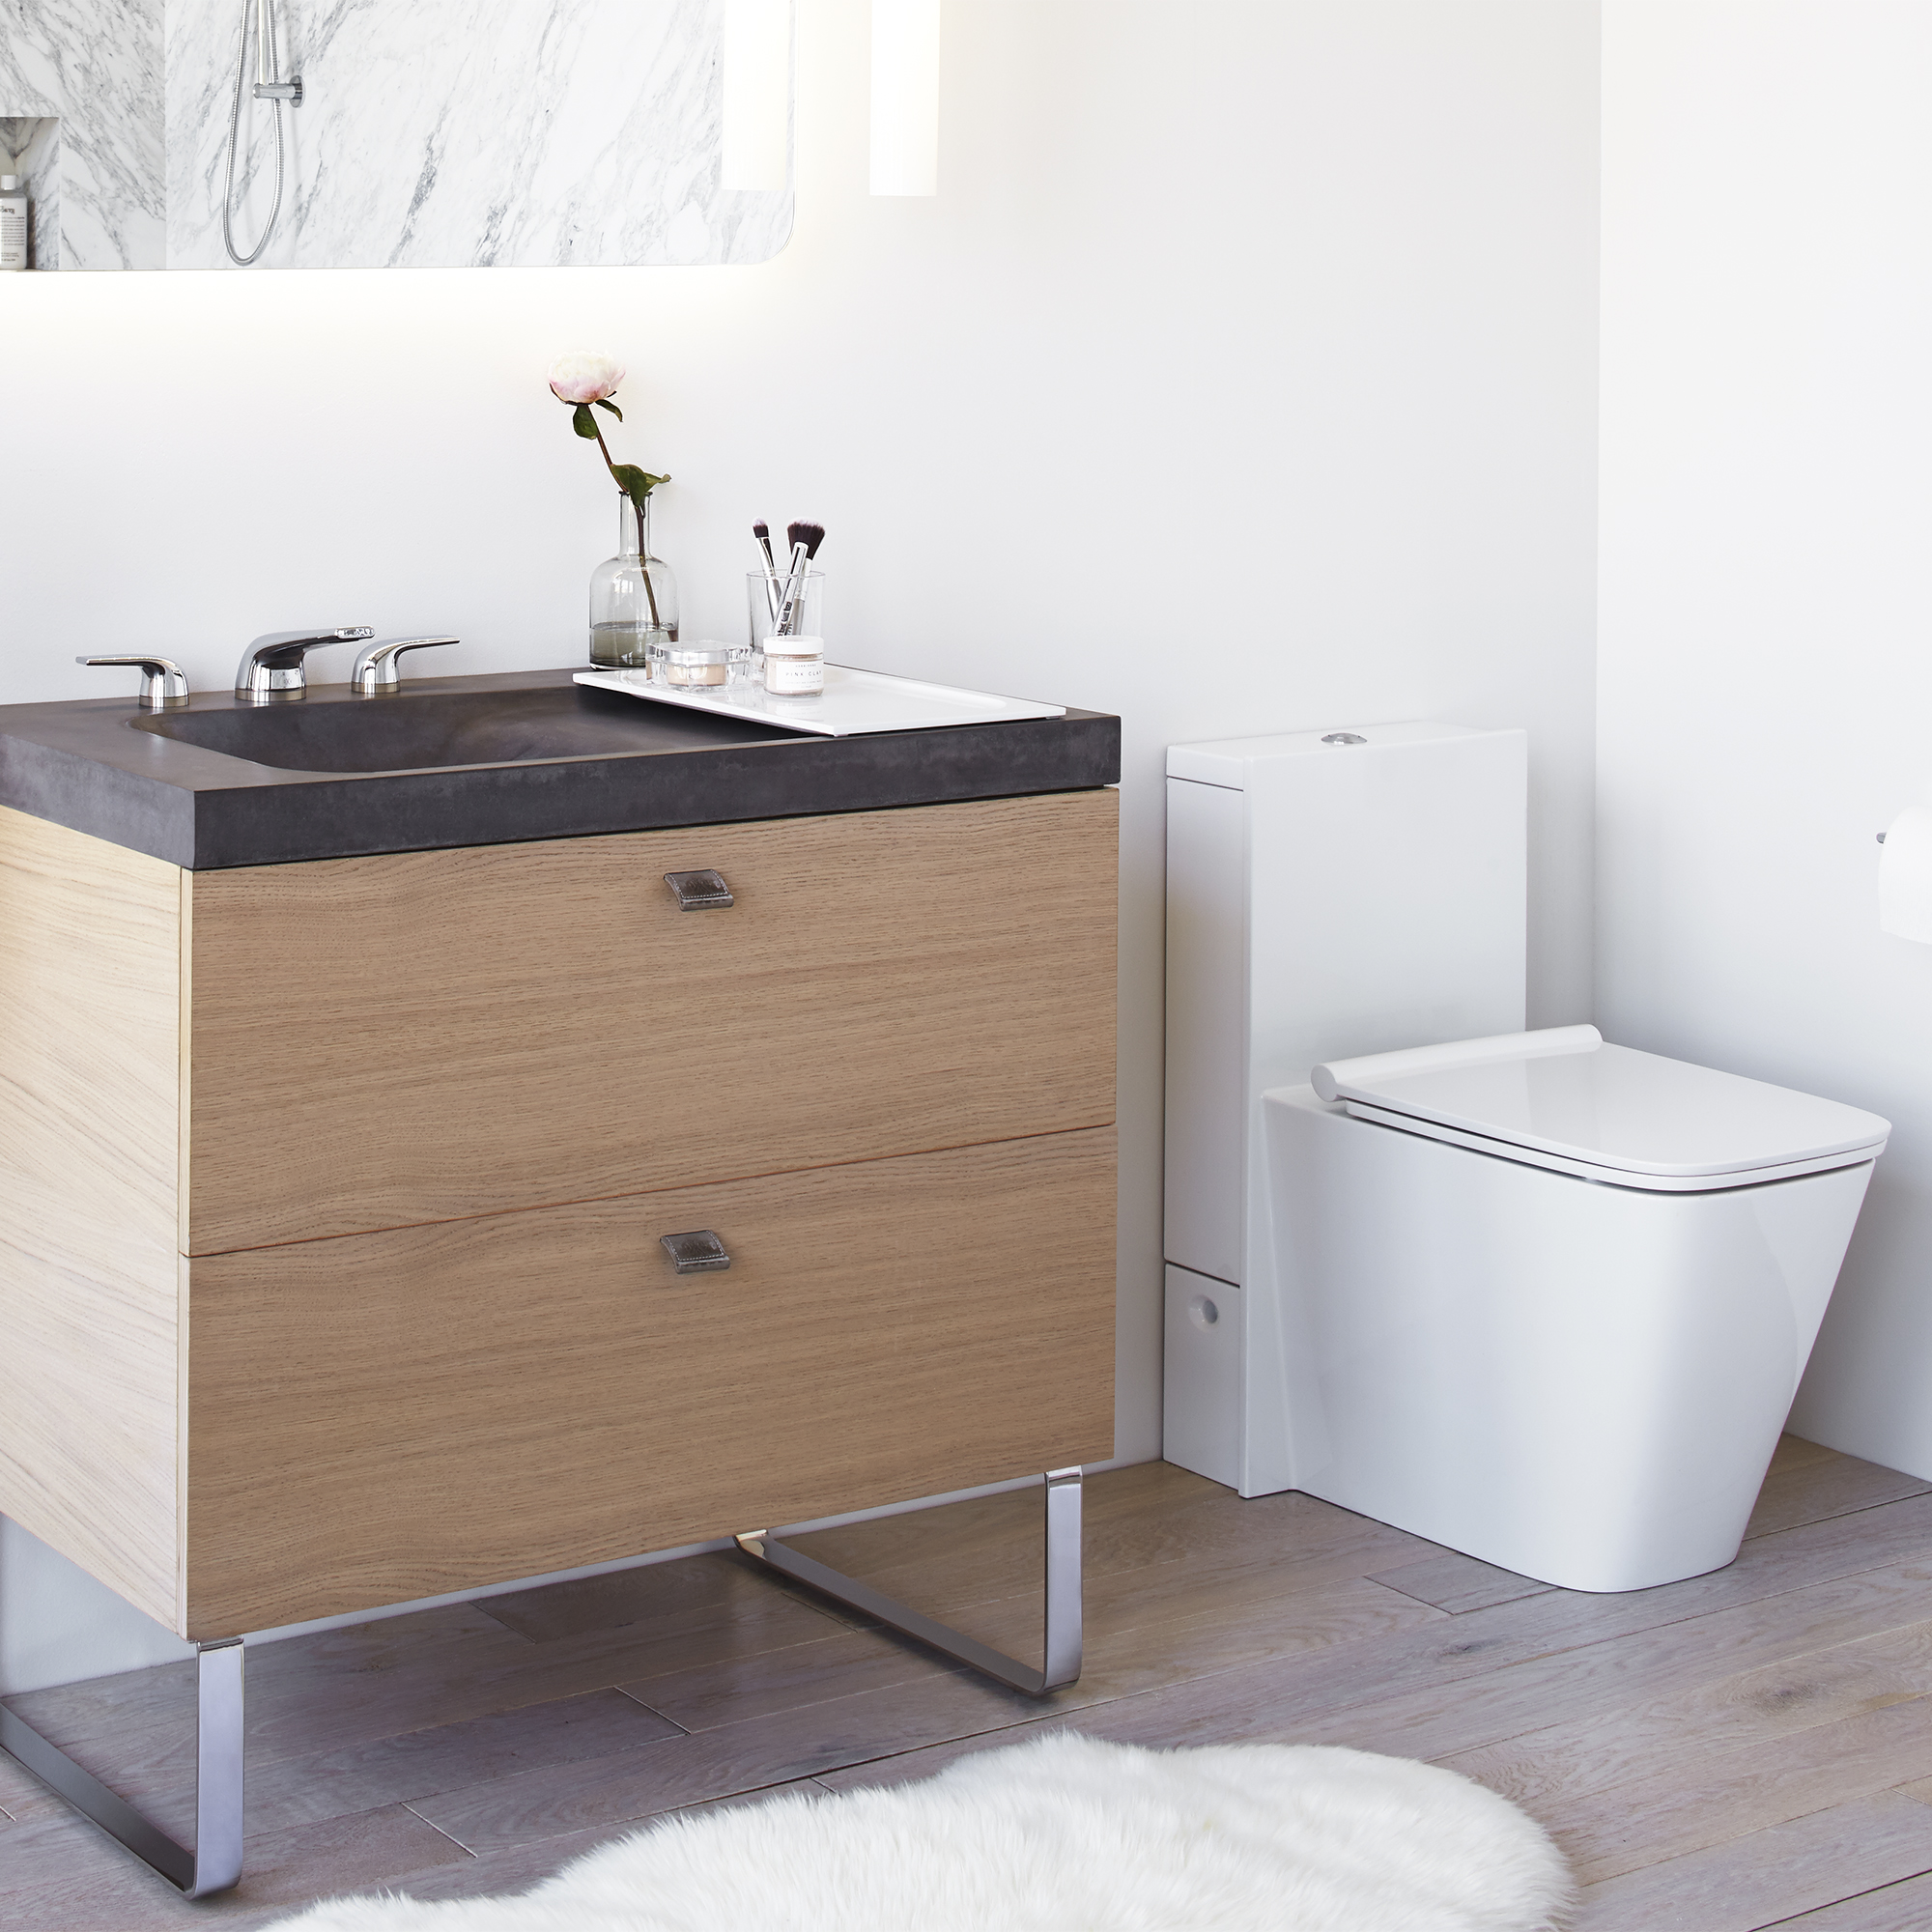 DXV Modulus Monolith One-Piece Elongated Toilet